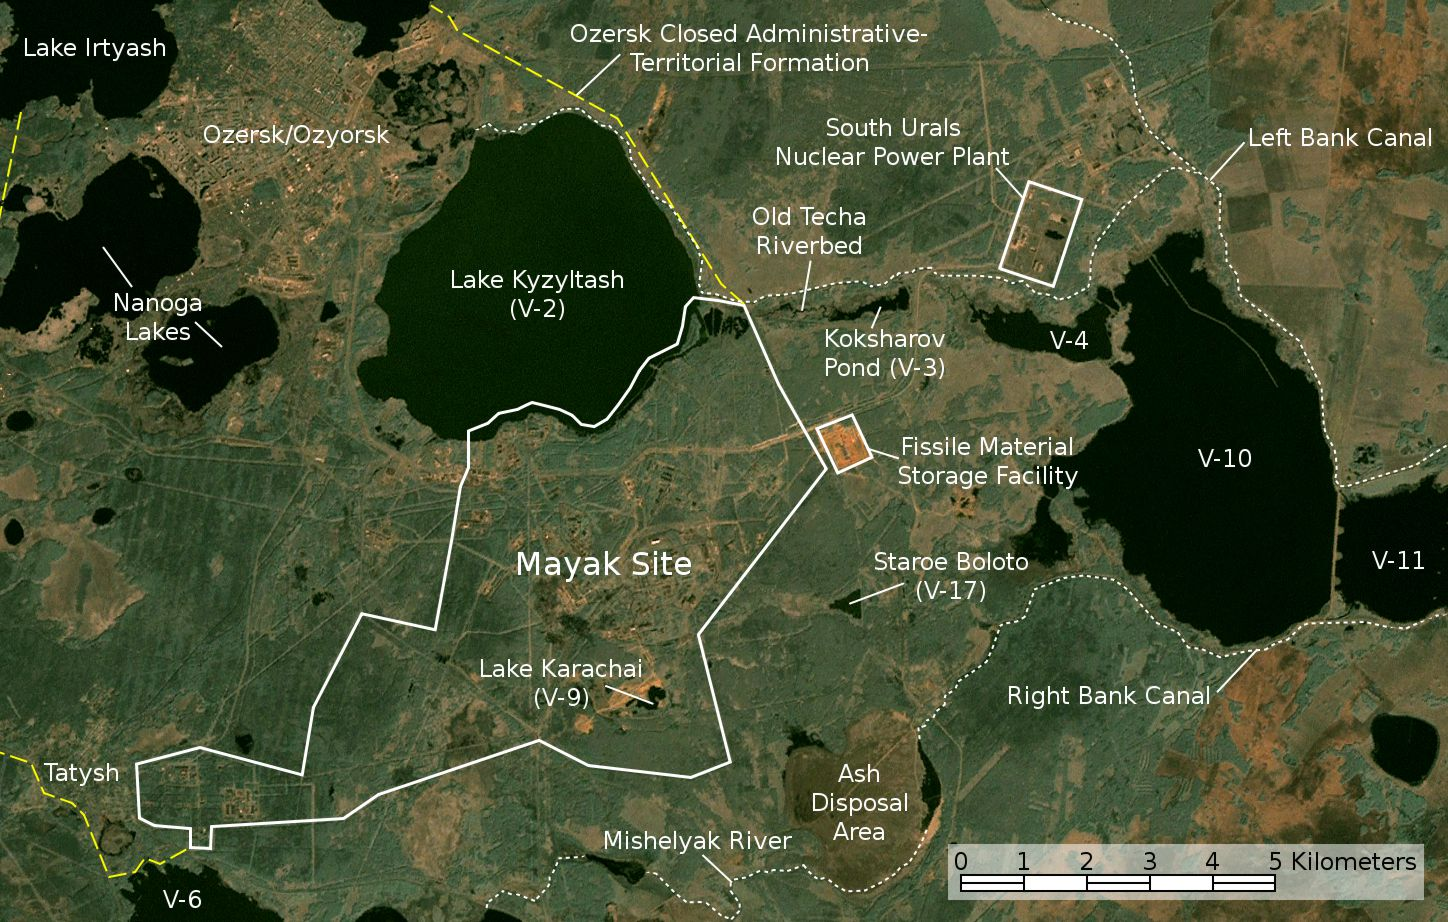 Mayak site and Kyshtym region